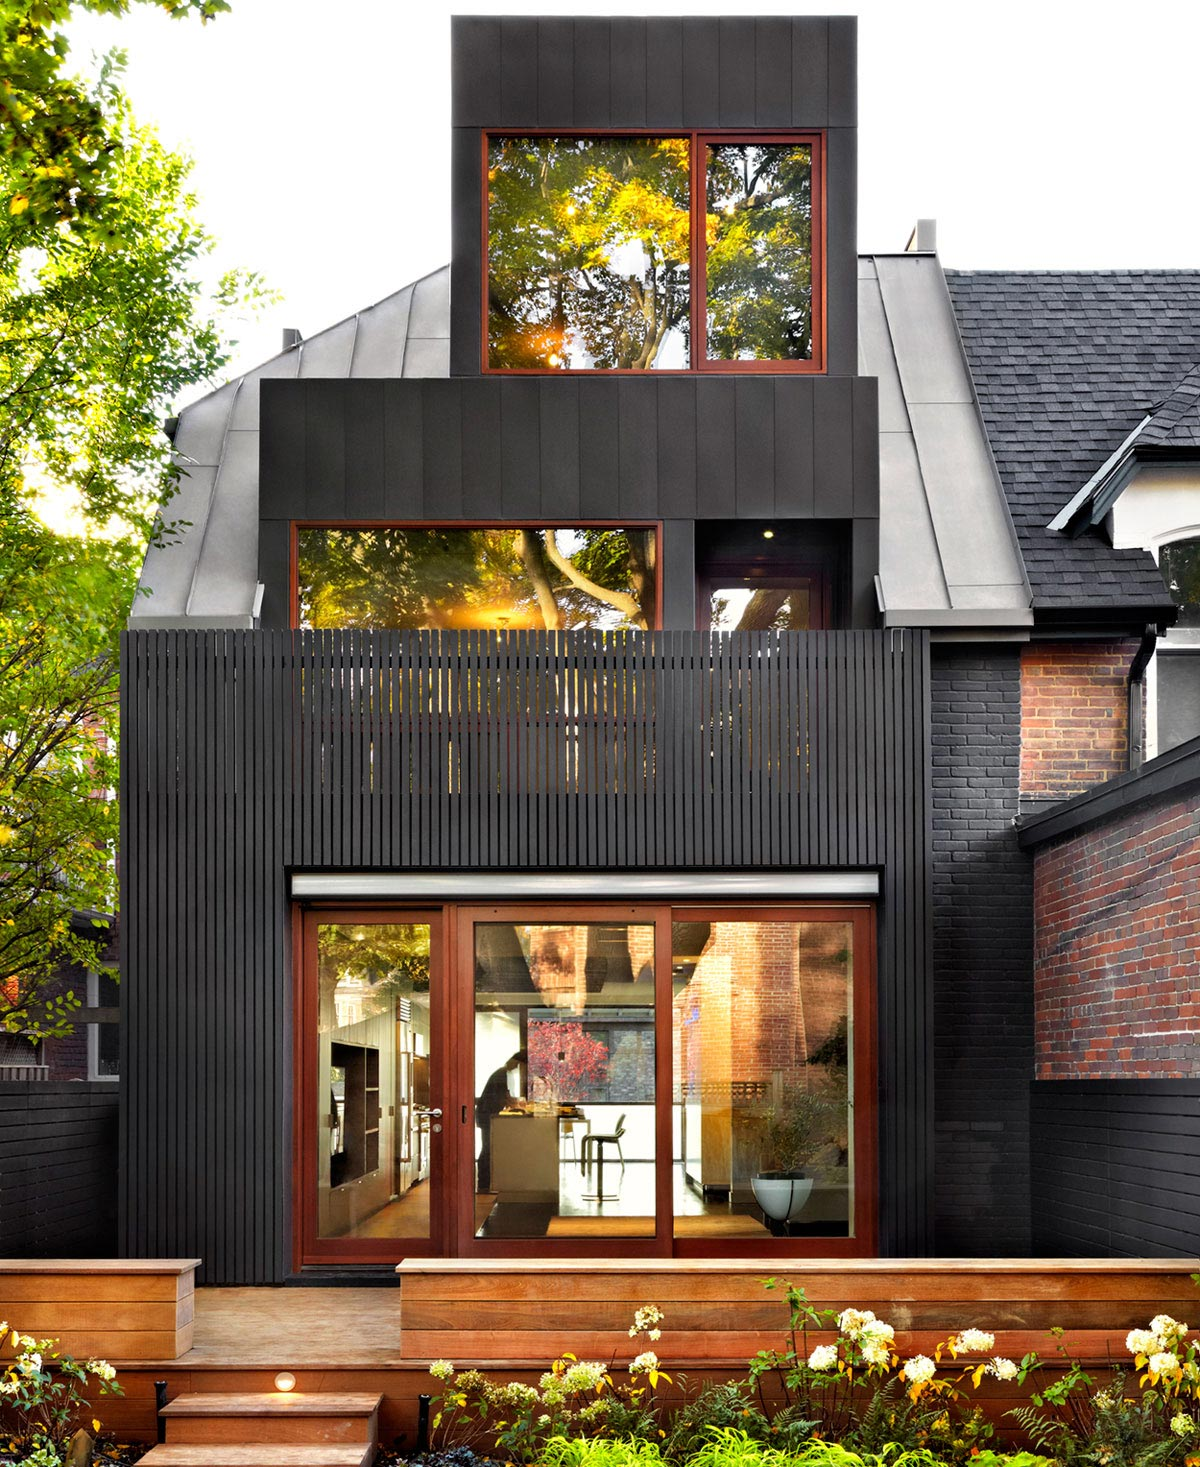 Modern Contemporary Design Blog: Modern Family Home Renovation And Addition To A